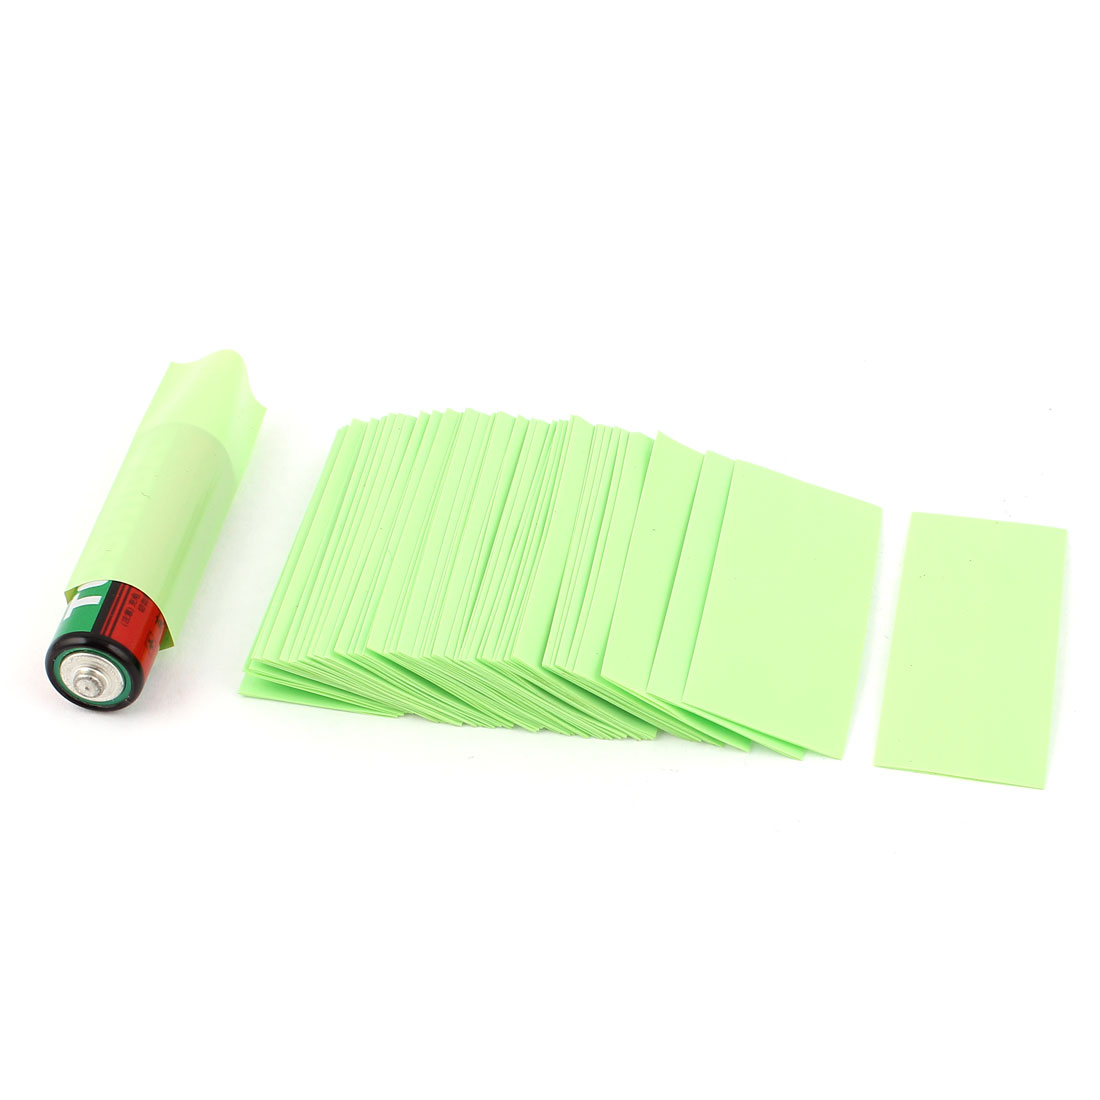 50pcs 23mm 14.5mm Dia PVC Heat Shrink Tubing Yellow Green for 1 x 1.5V AA Battery